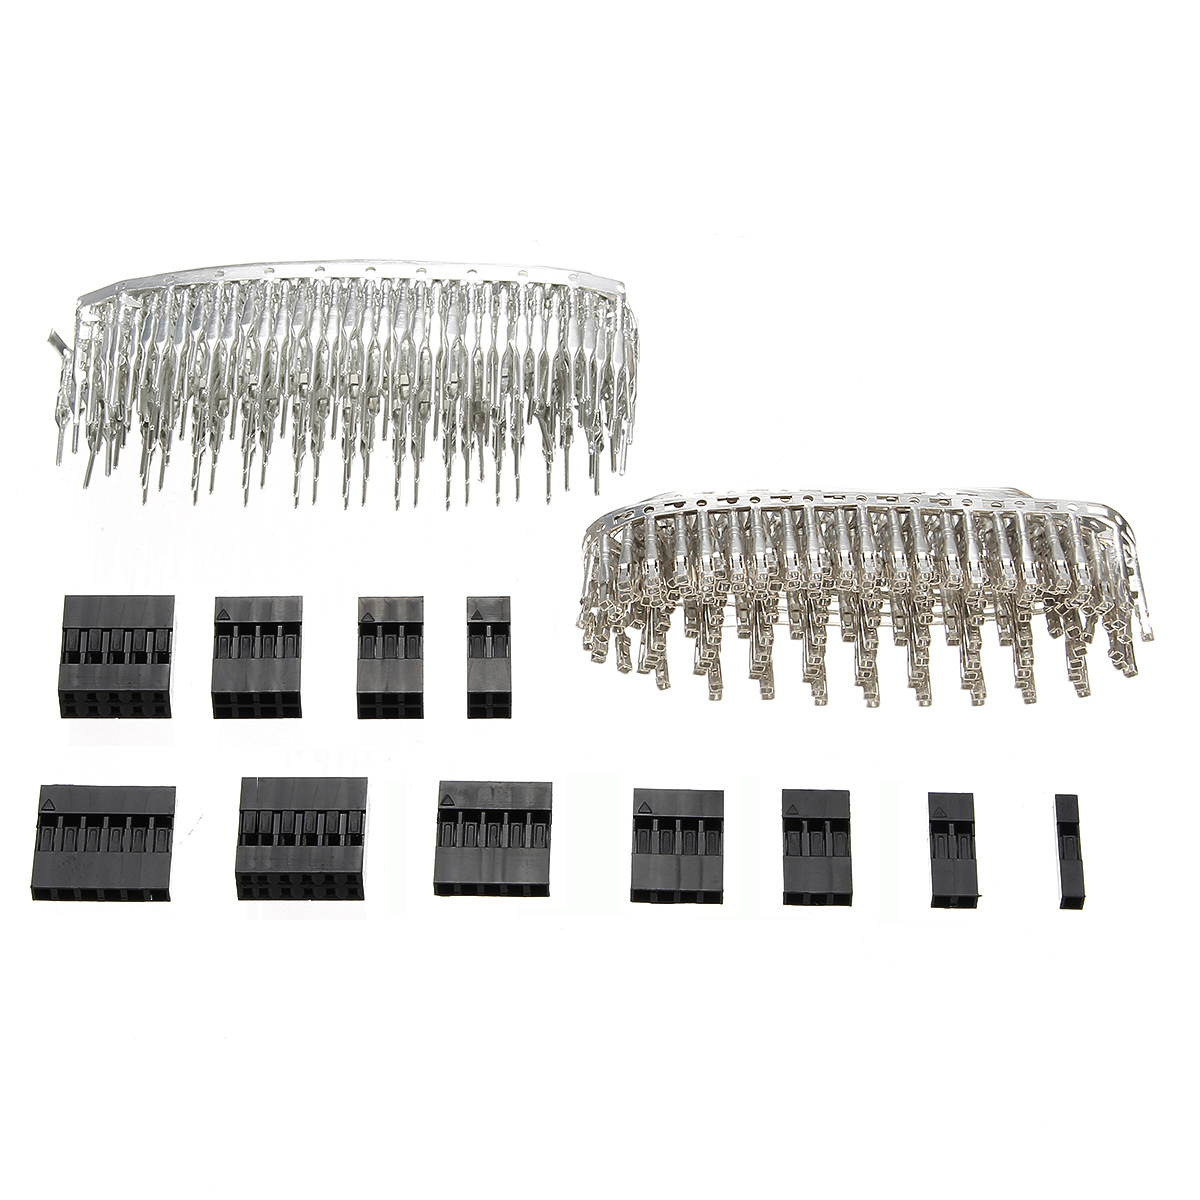 Excellway Tc10 620pcs Wire Jumper Pin Header Connector Housing Kit For Dupont And Crimp Pins